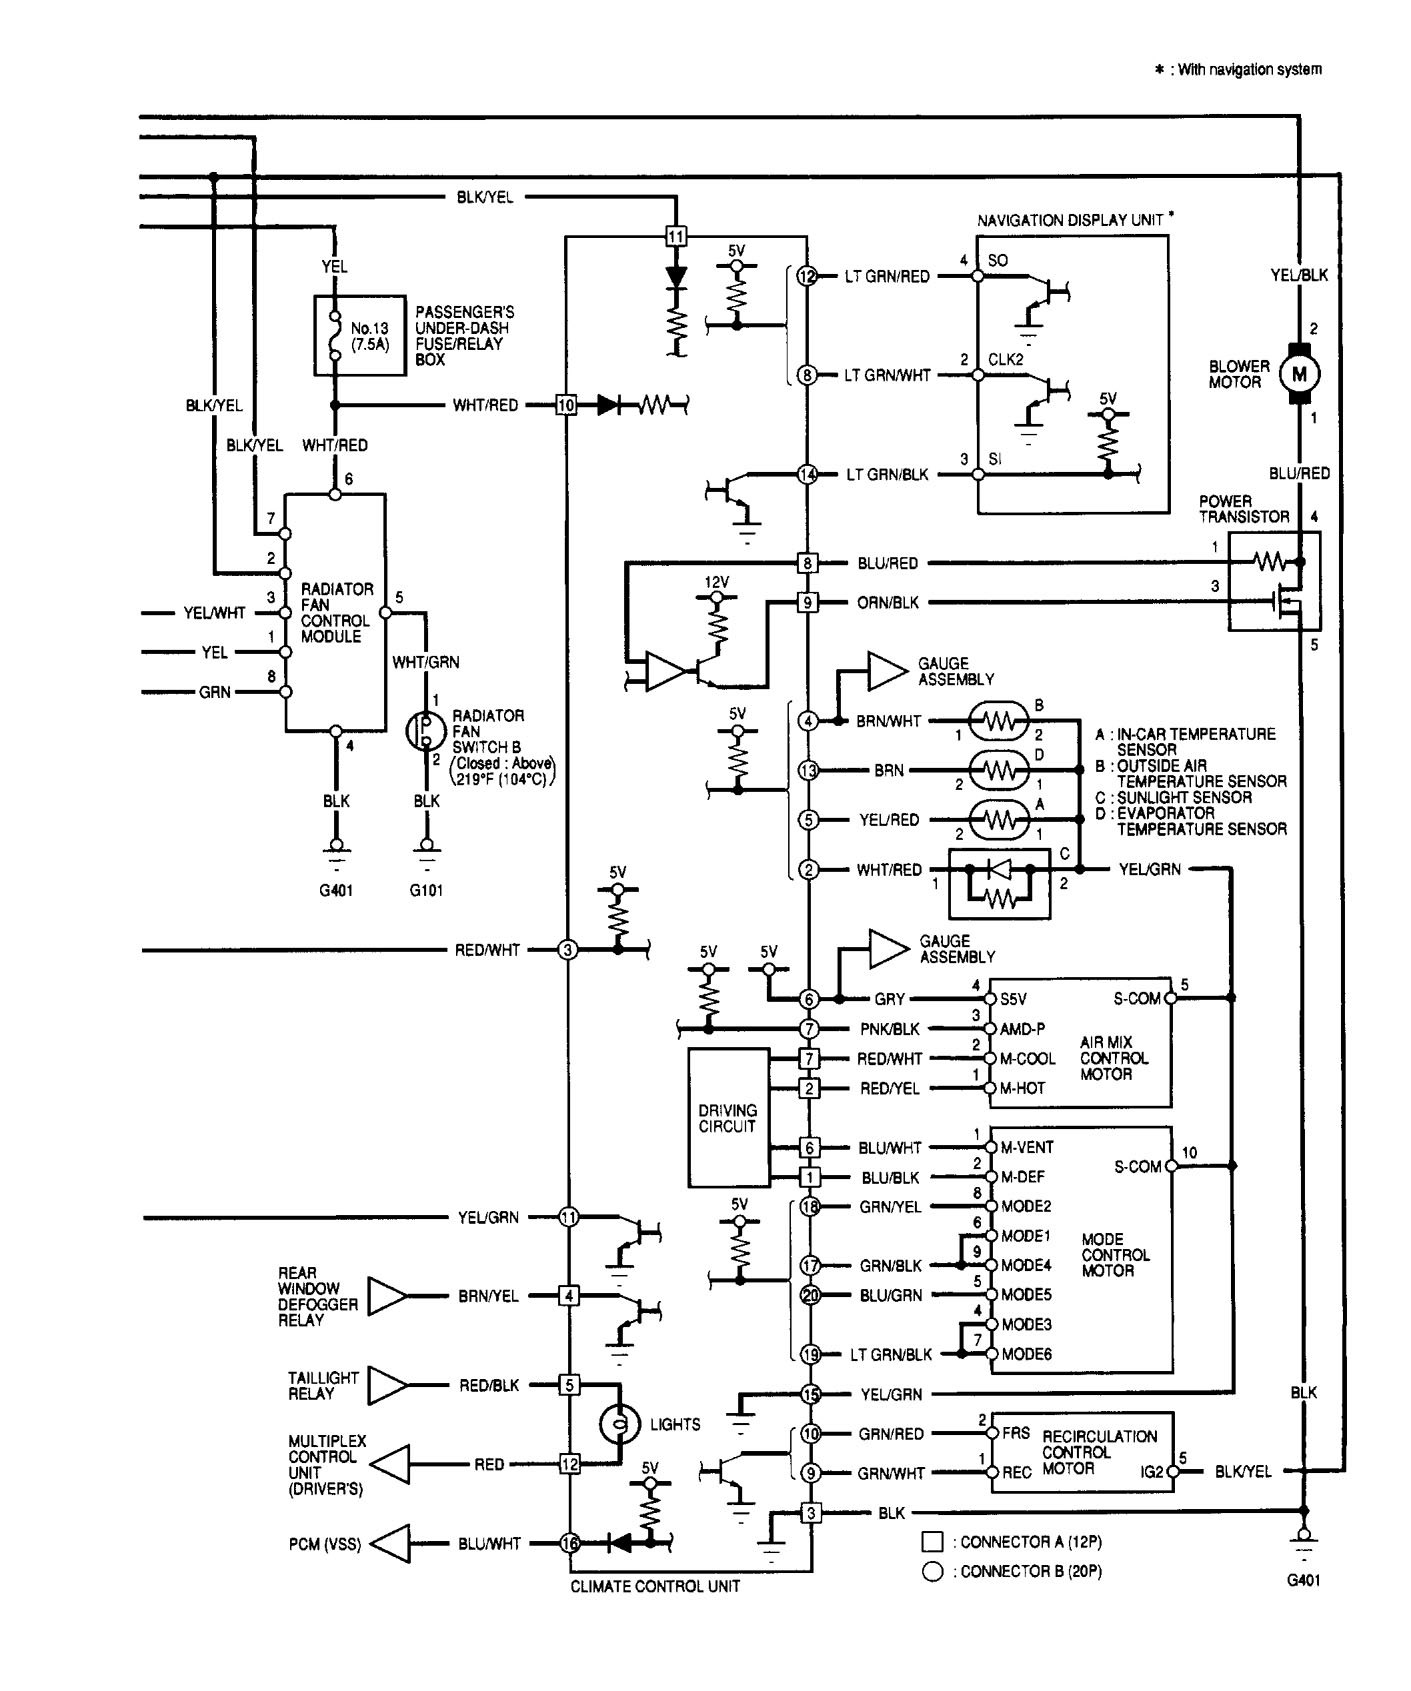 ... Acura TL – wiring diagram – HVAC control (part 2)